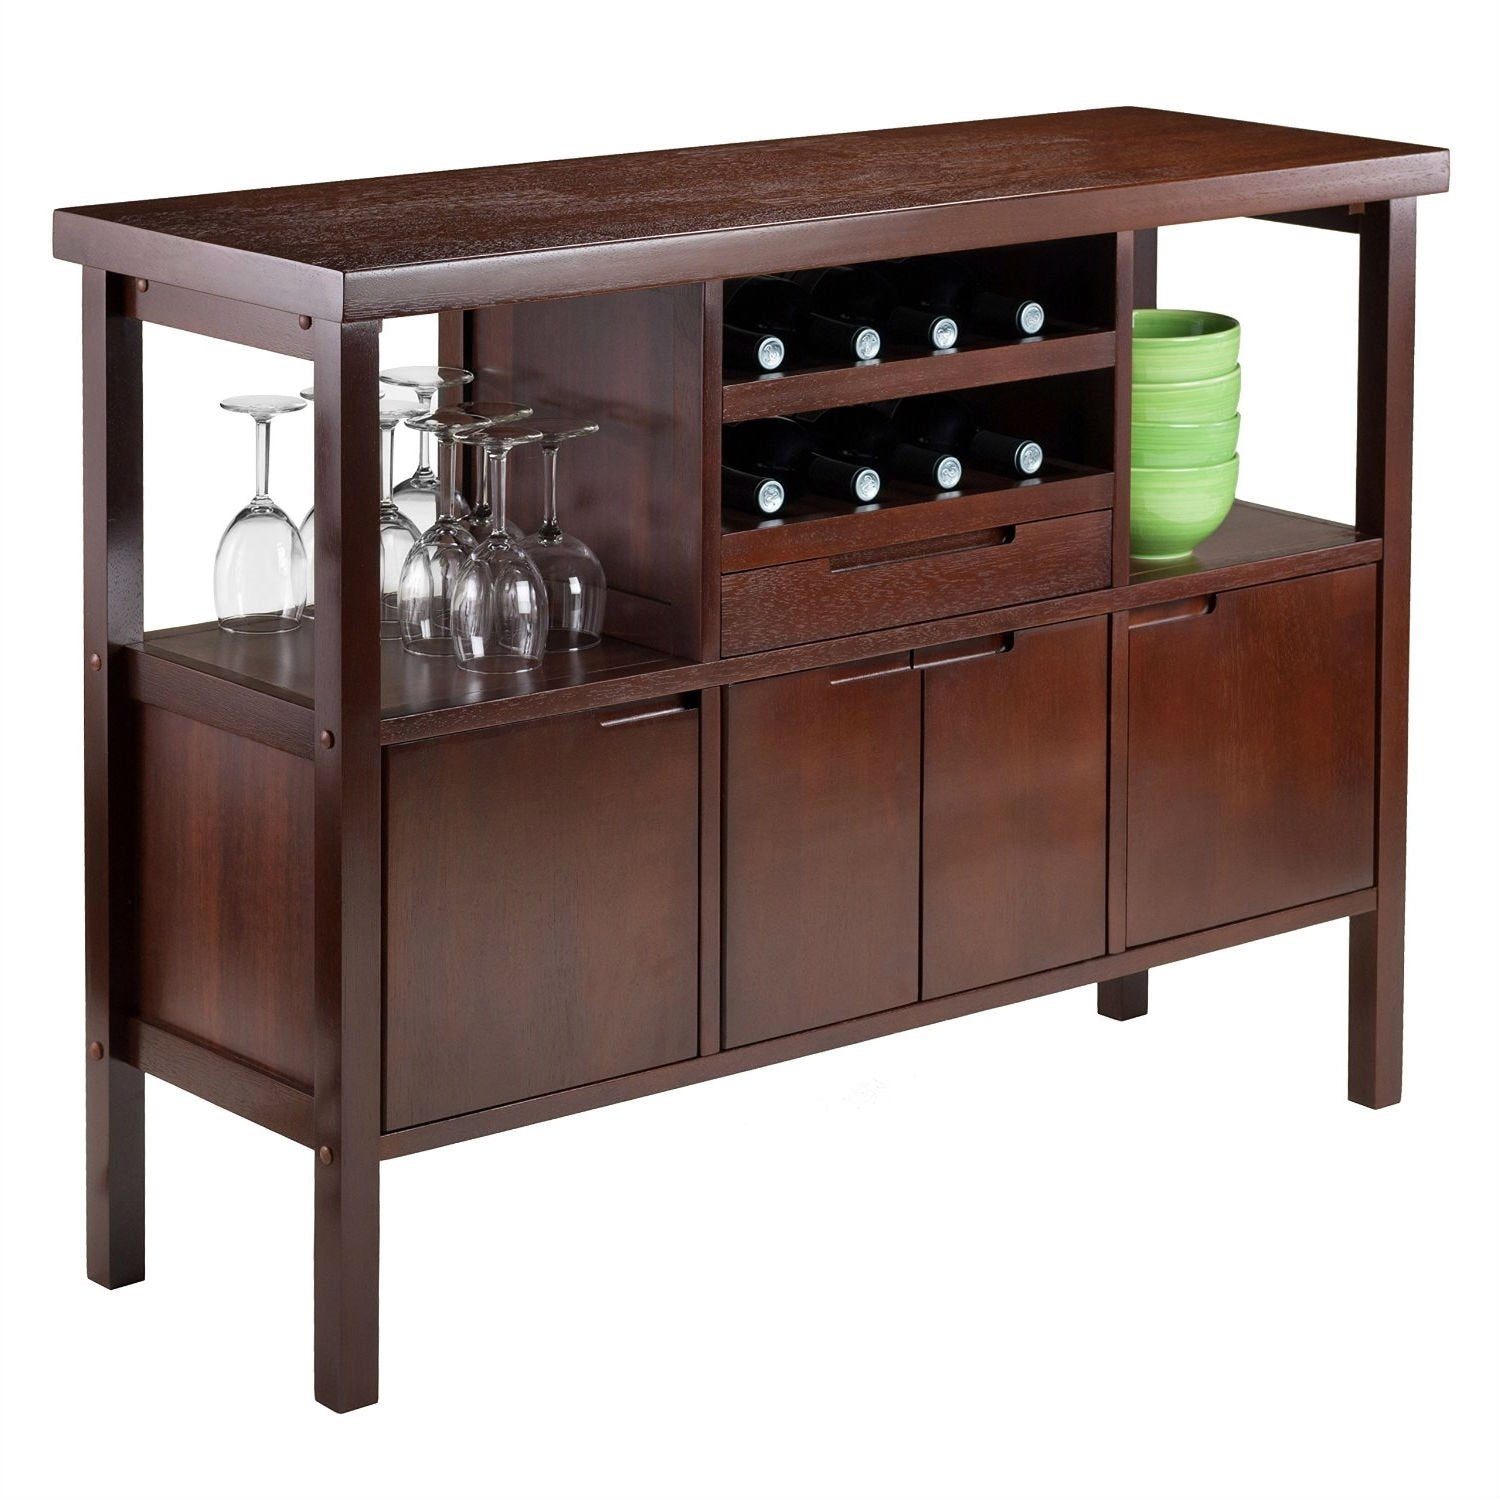 Sideboard Buffet Table Wine Rack in Brown Wood Finish